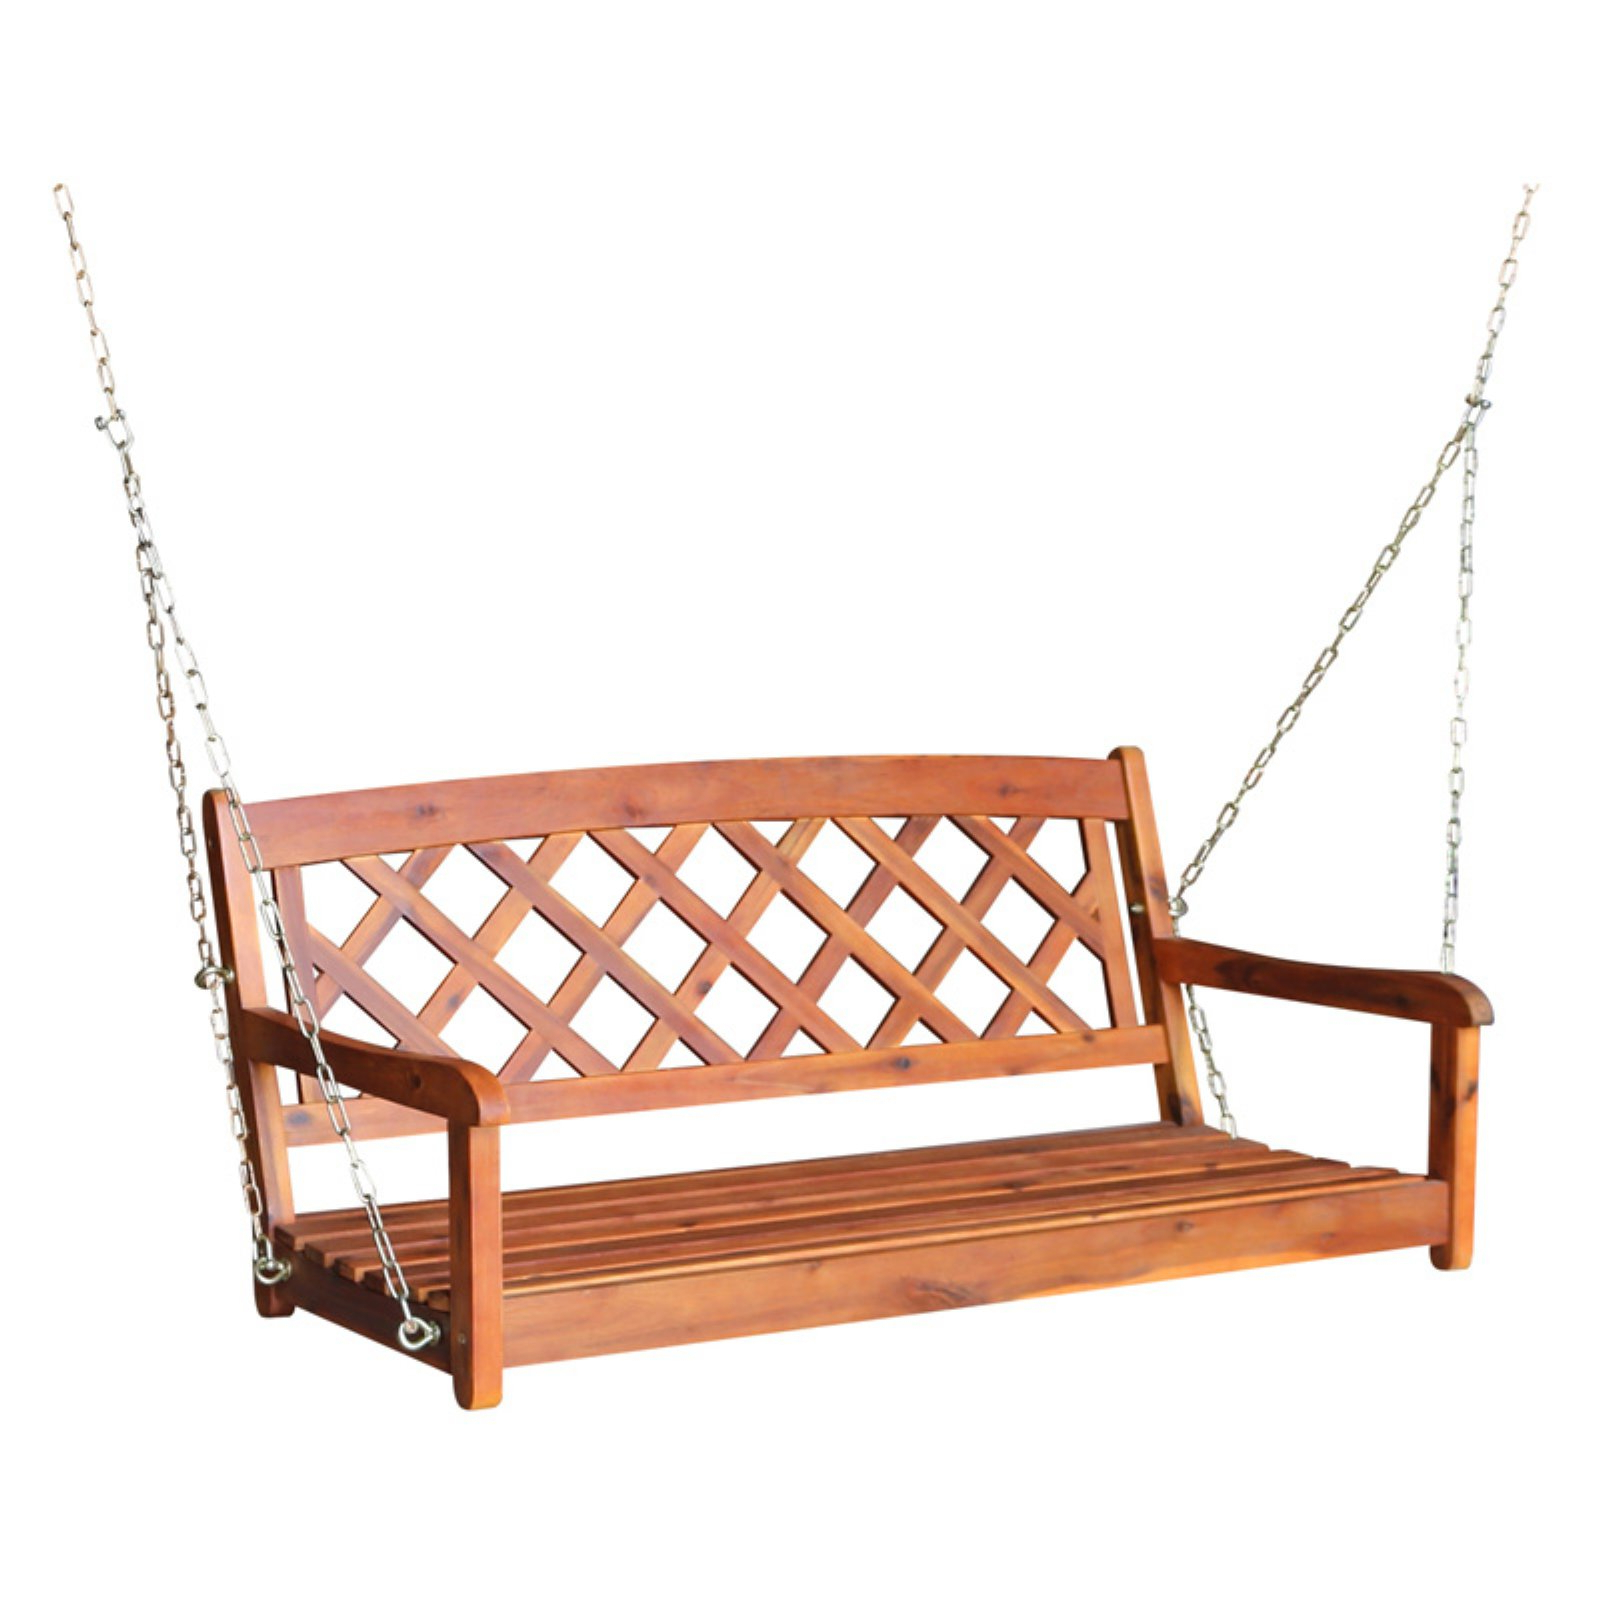 Most Recent Porch Swings With Chain Within International Concepts X Back Porch Swing With Chain In (View 18 of 30)